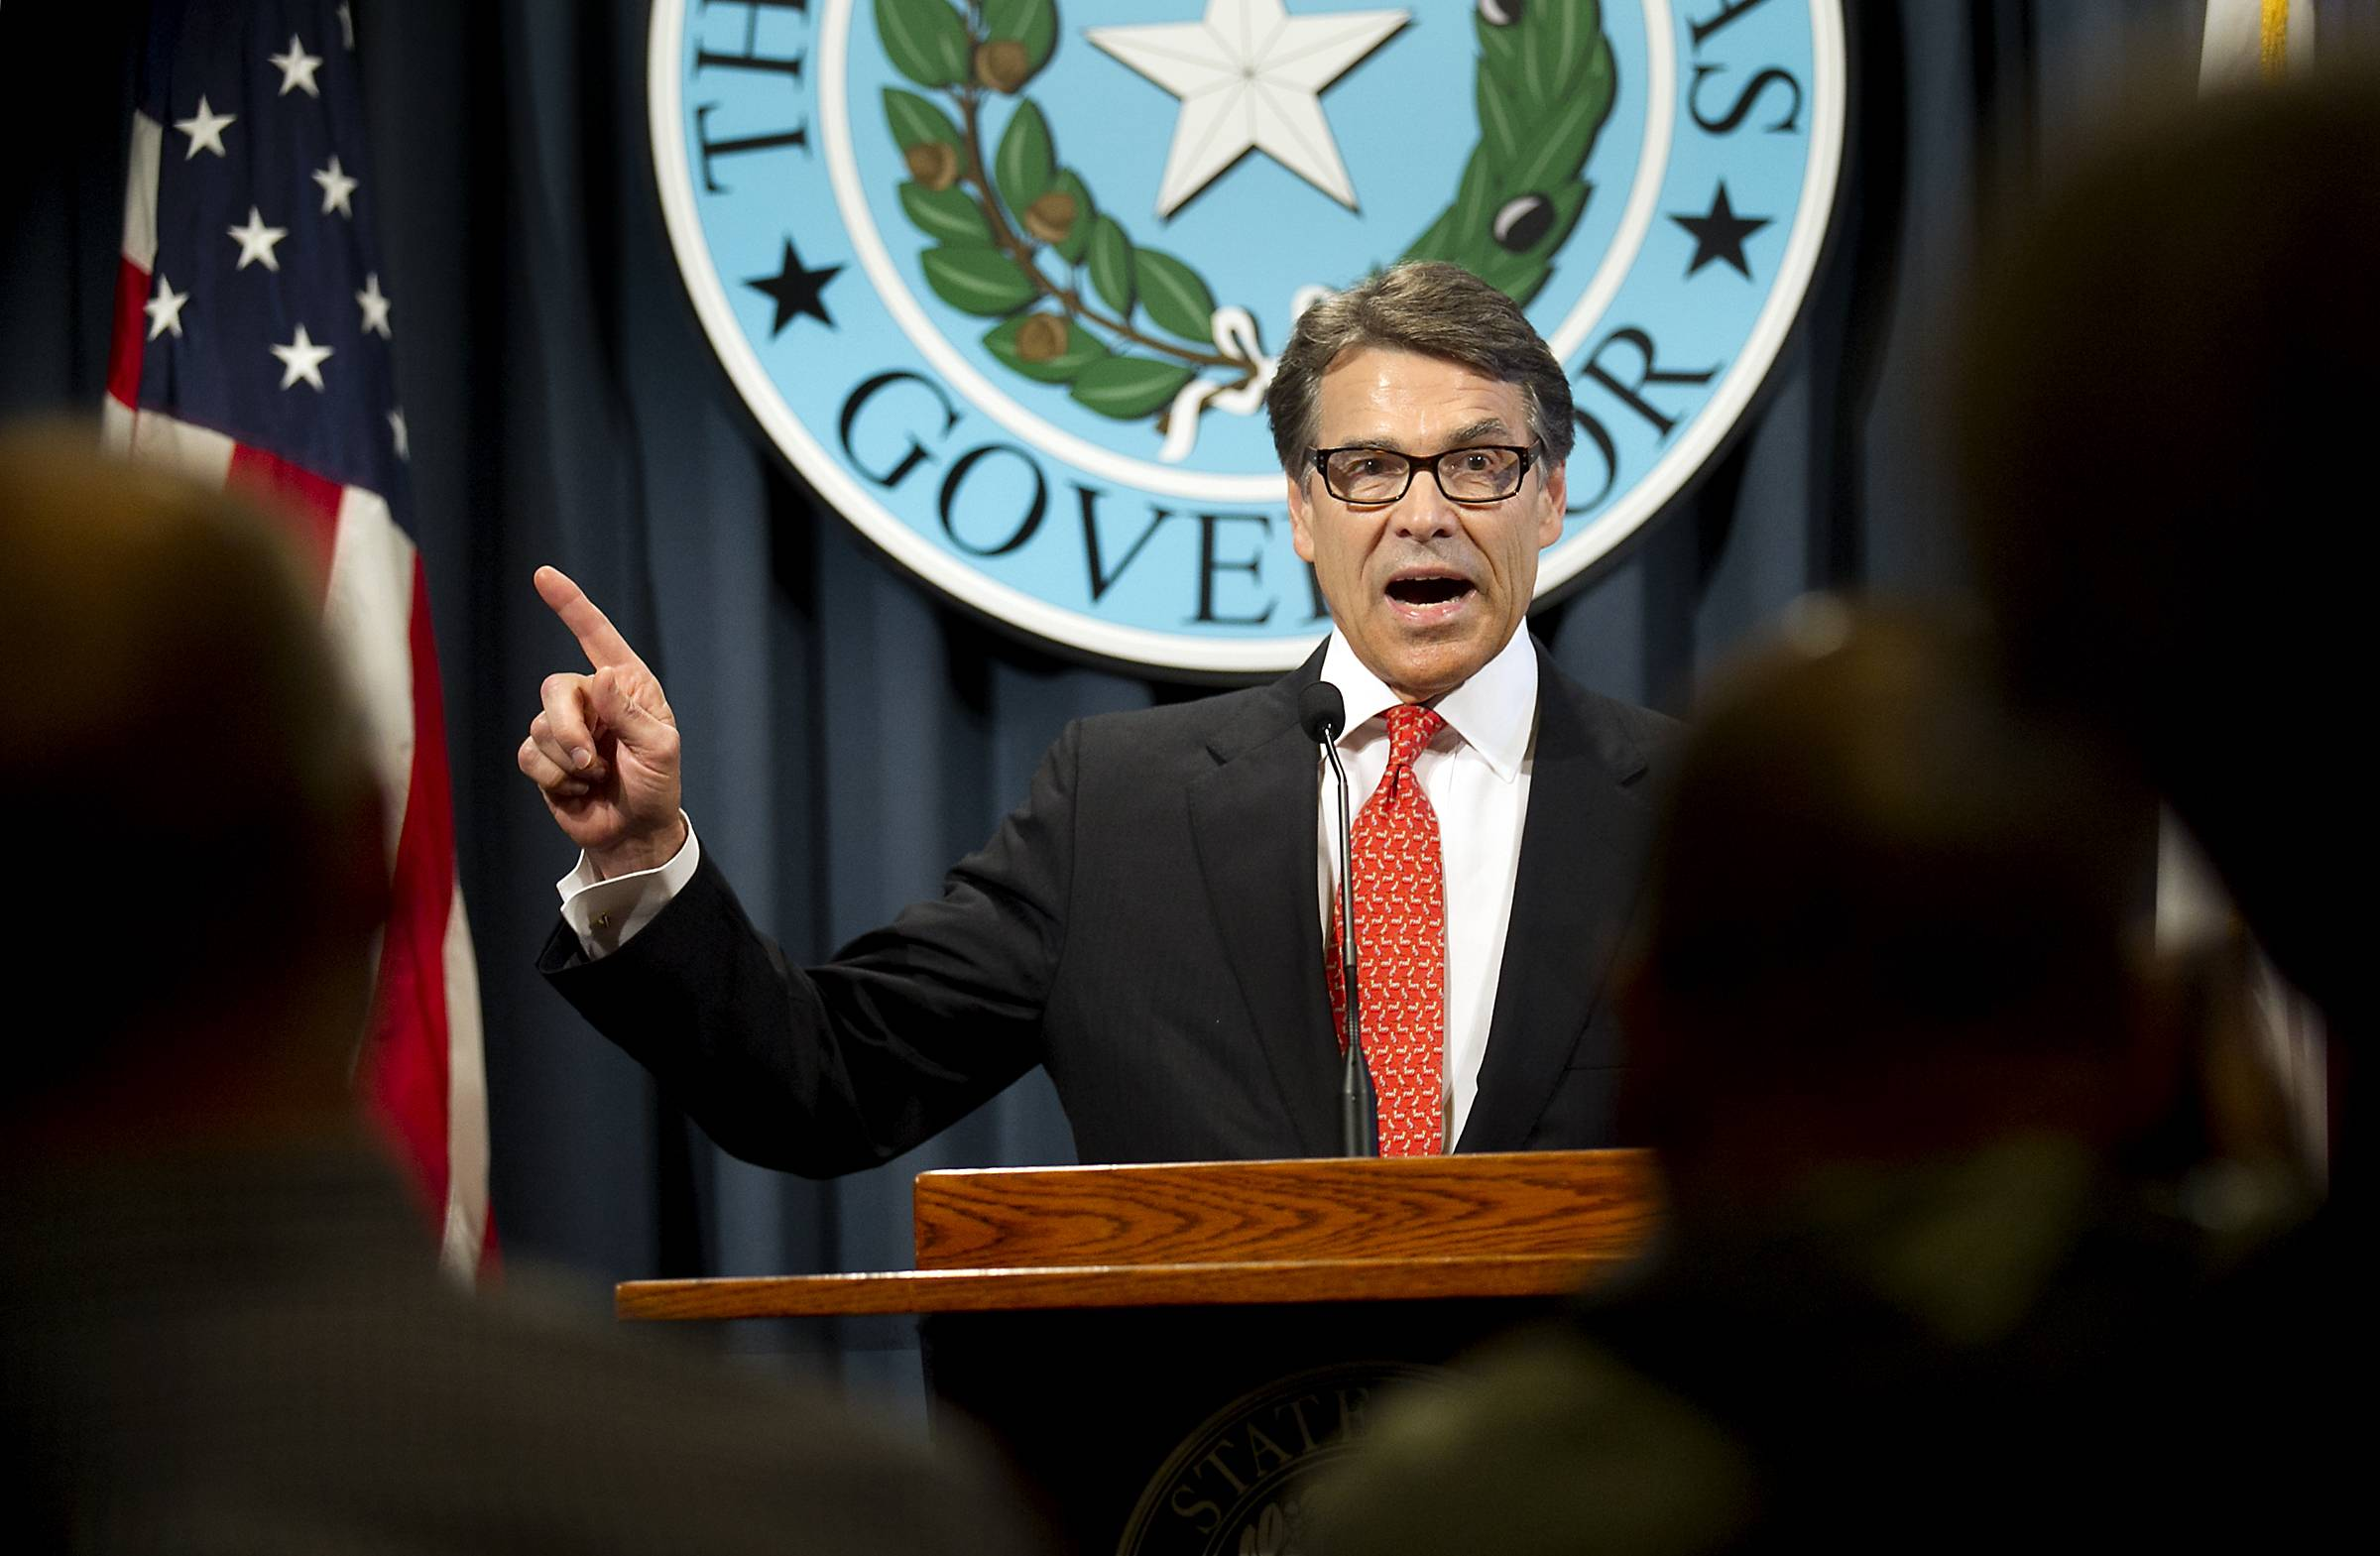 Associated PressGov. Rick Perry makes a statement in Austin, Texas Saturday concerning the indictment on charges of coercion of a public servant and abuse of his official capacity.